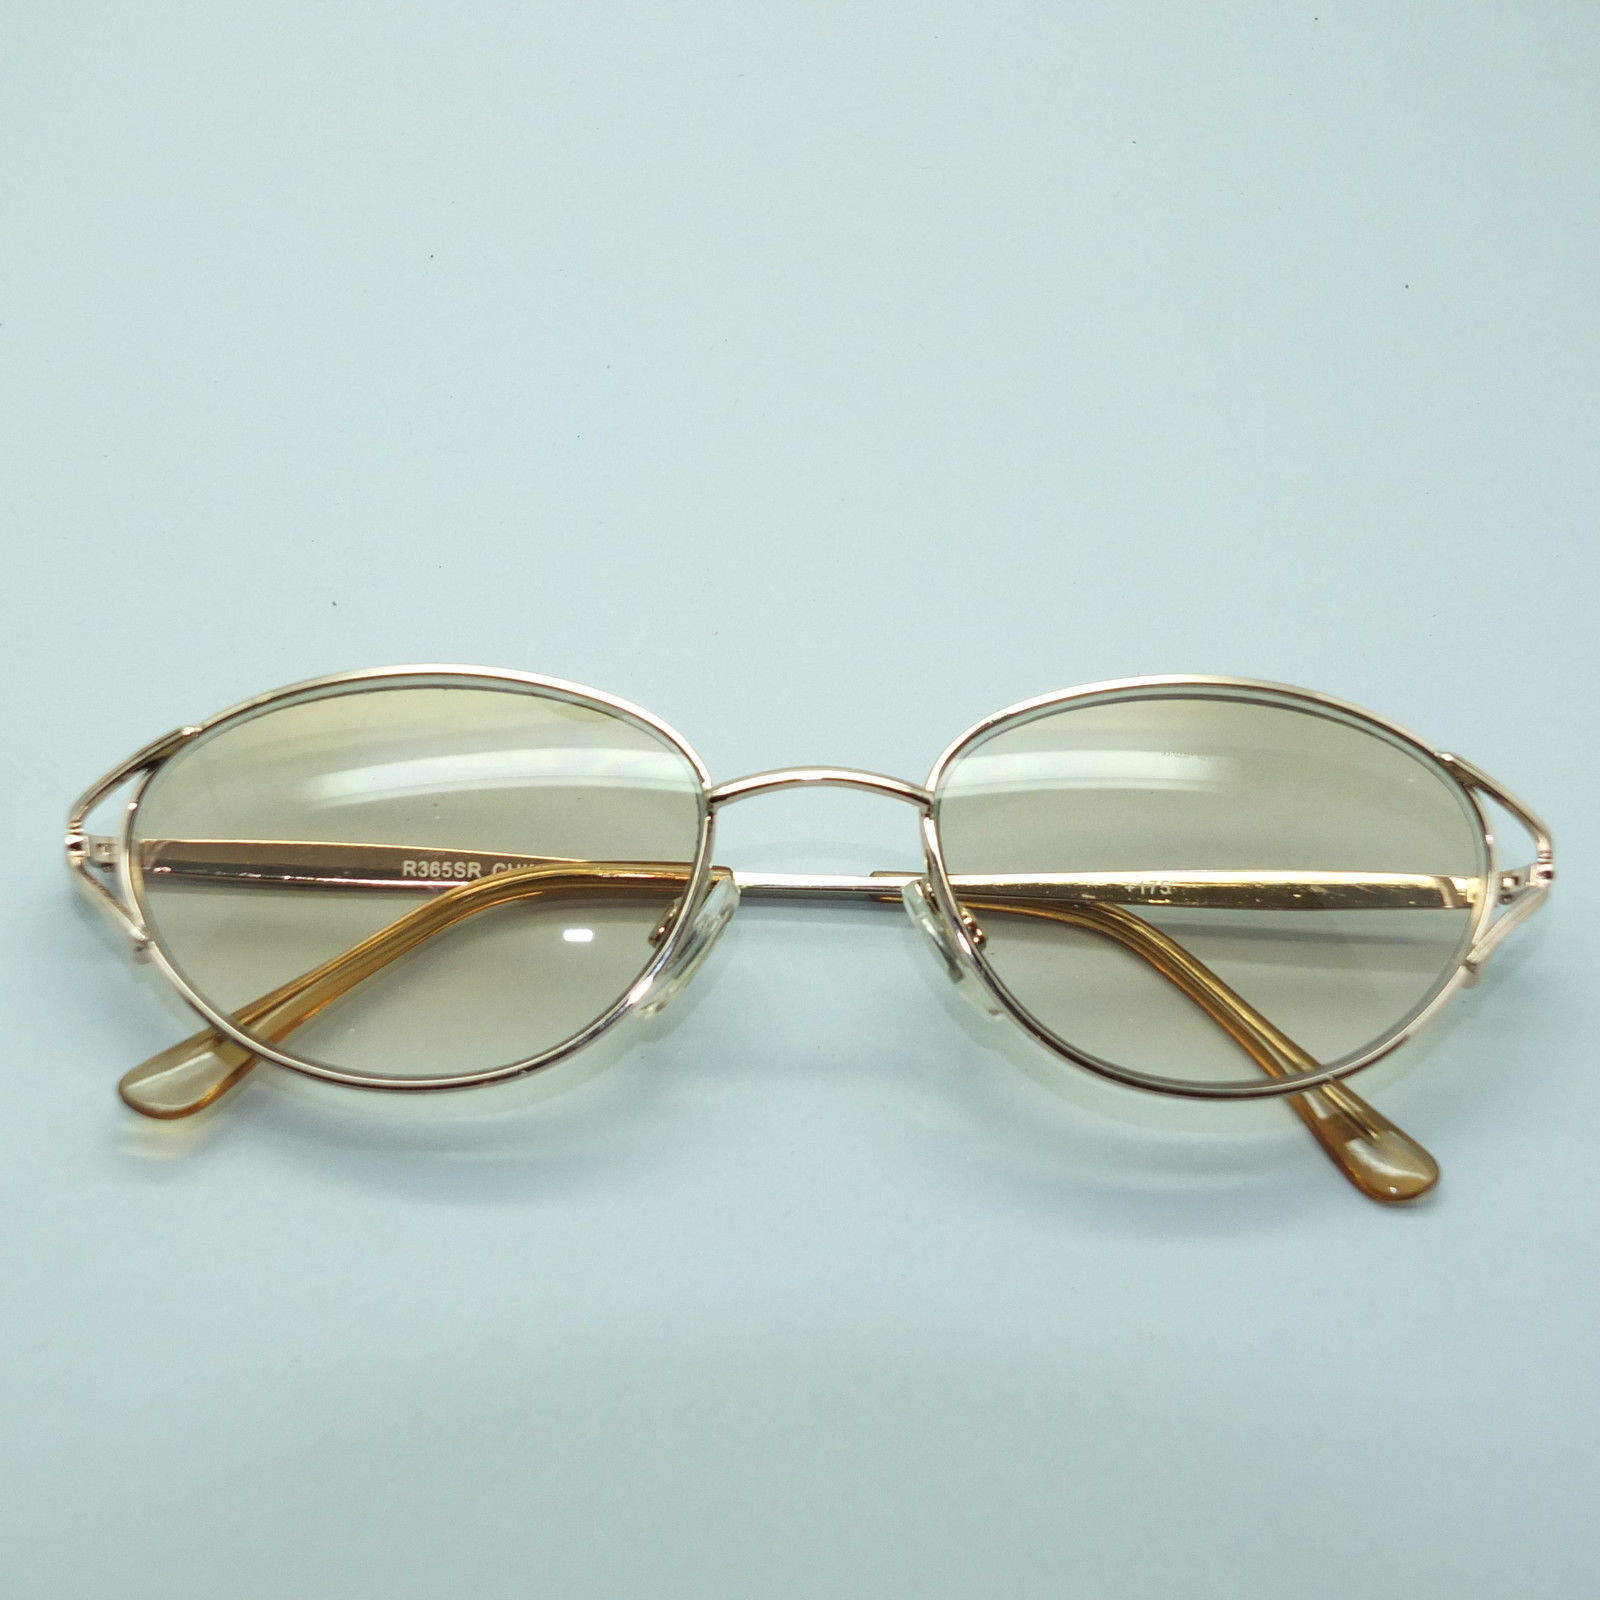 Gold Frame Reading Glasses : Classic Ladies Oval Pretty Gold Frame Tinted Sunglasses ...